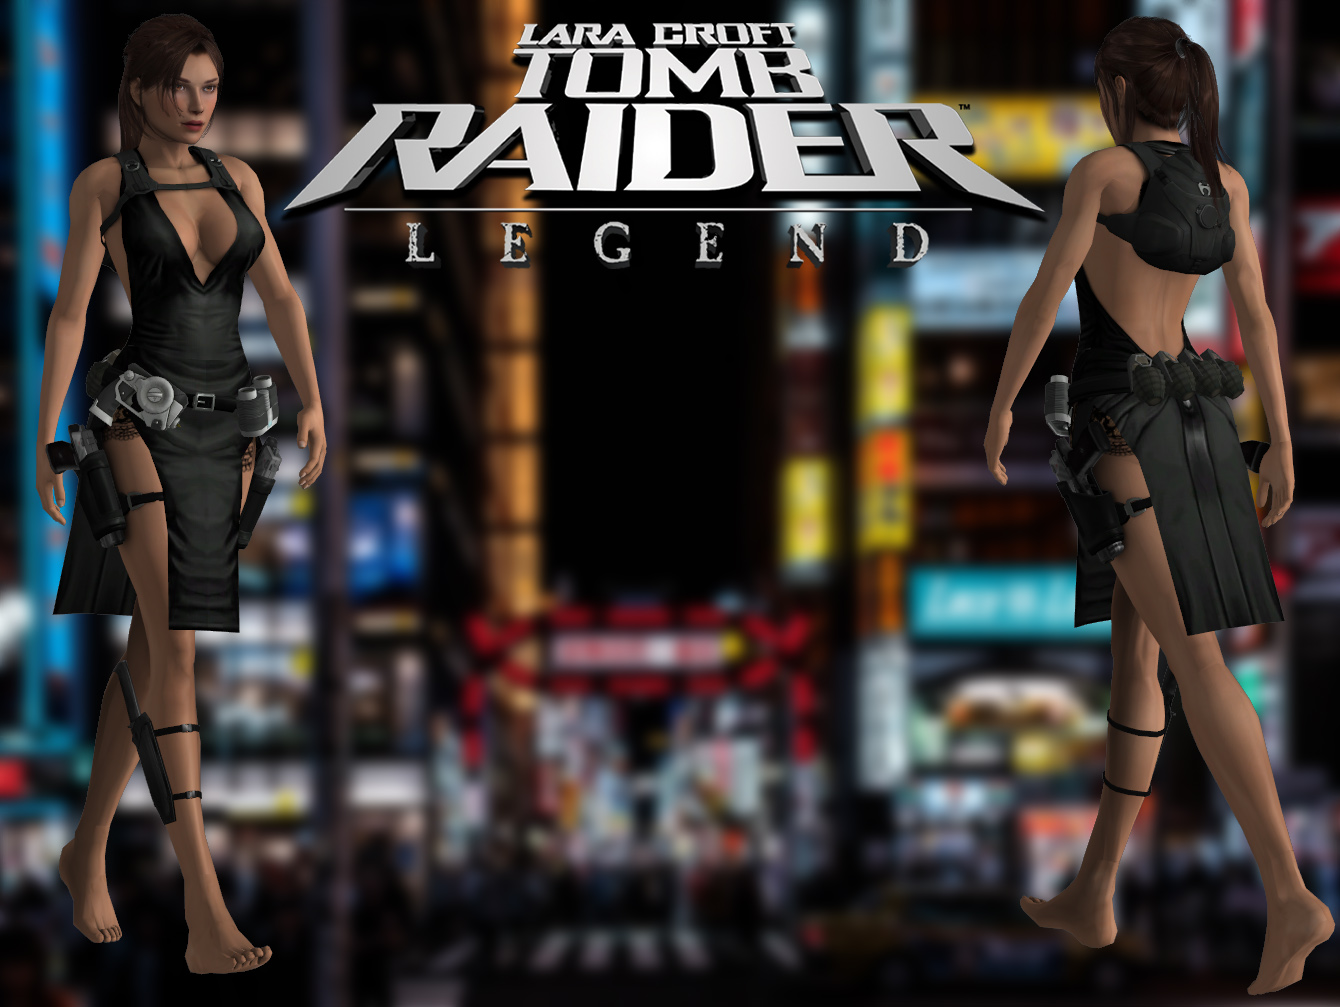 lara croft tomb raider legend outfits